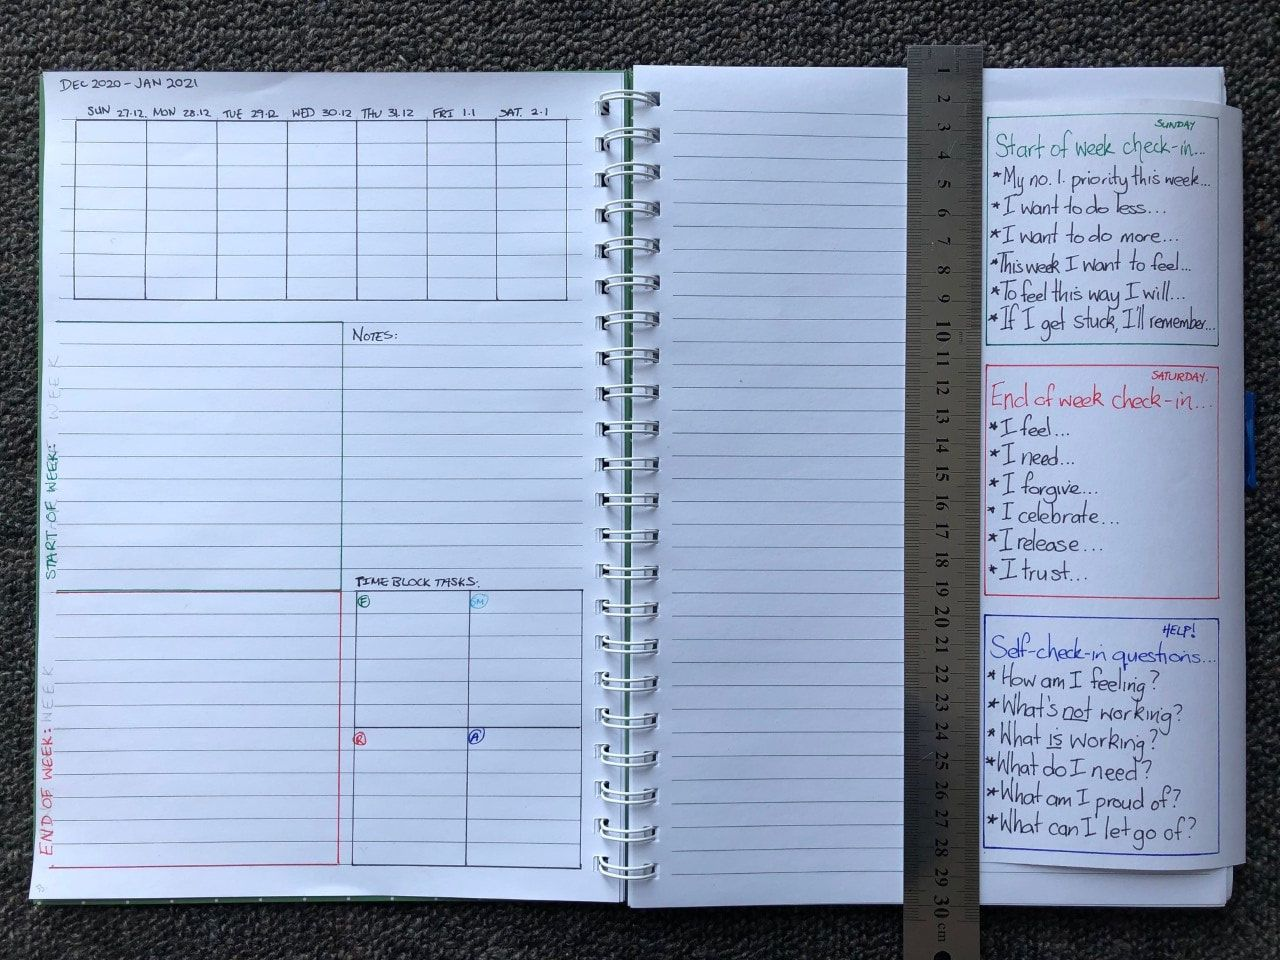 Illustrating how the Planner Foldout with tab can be tucked around open pages when in use.pages